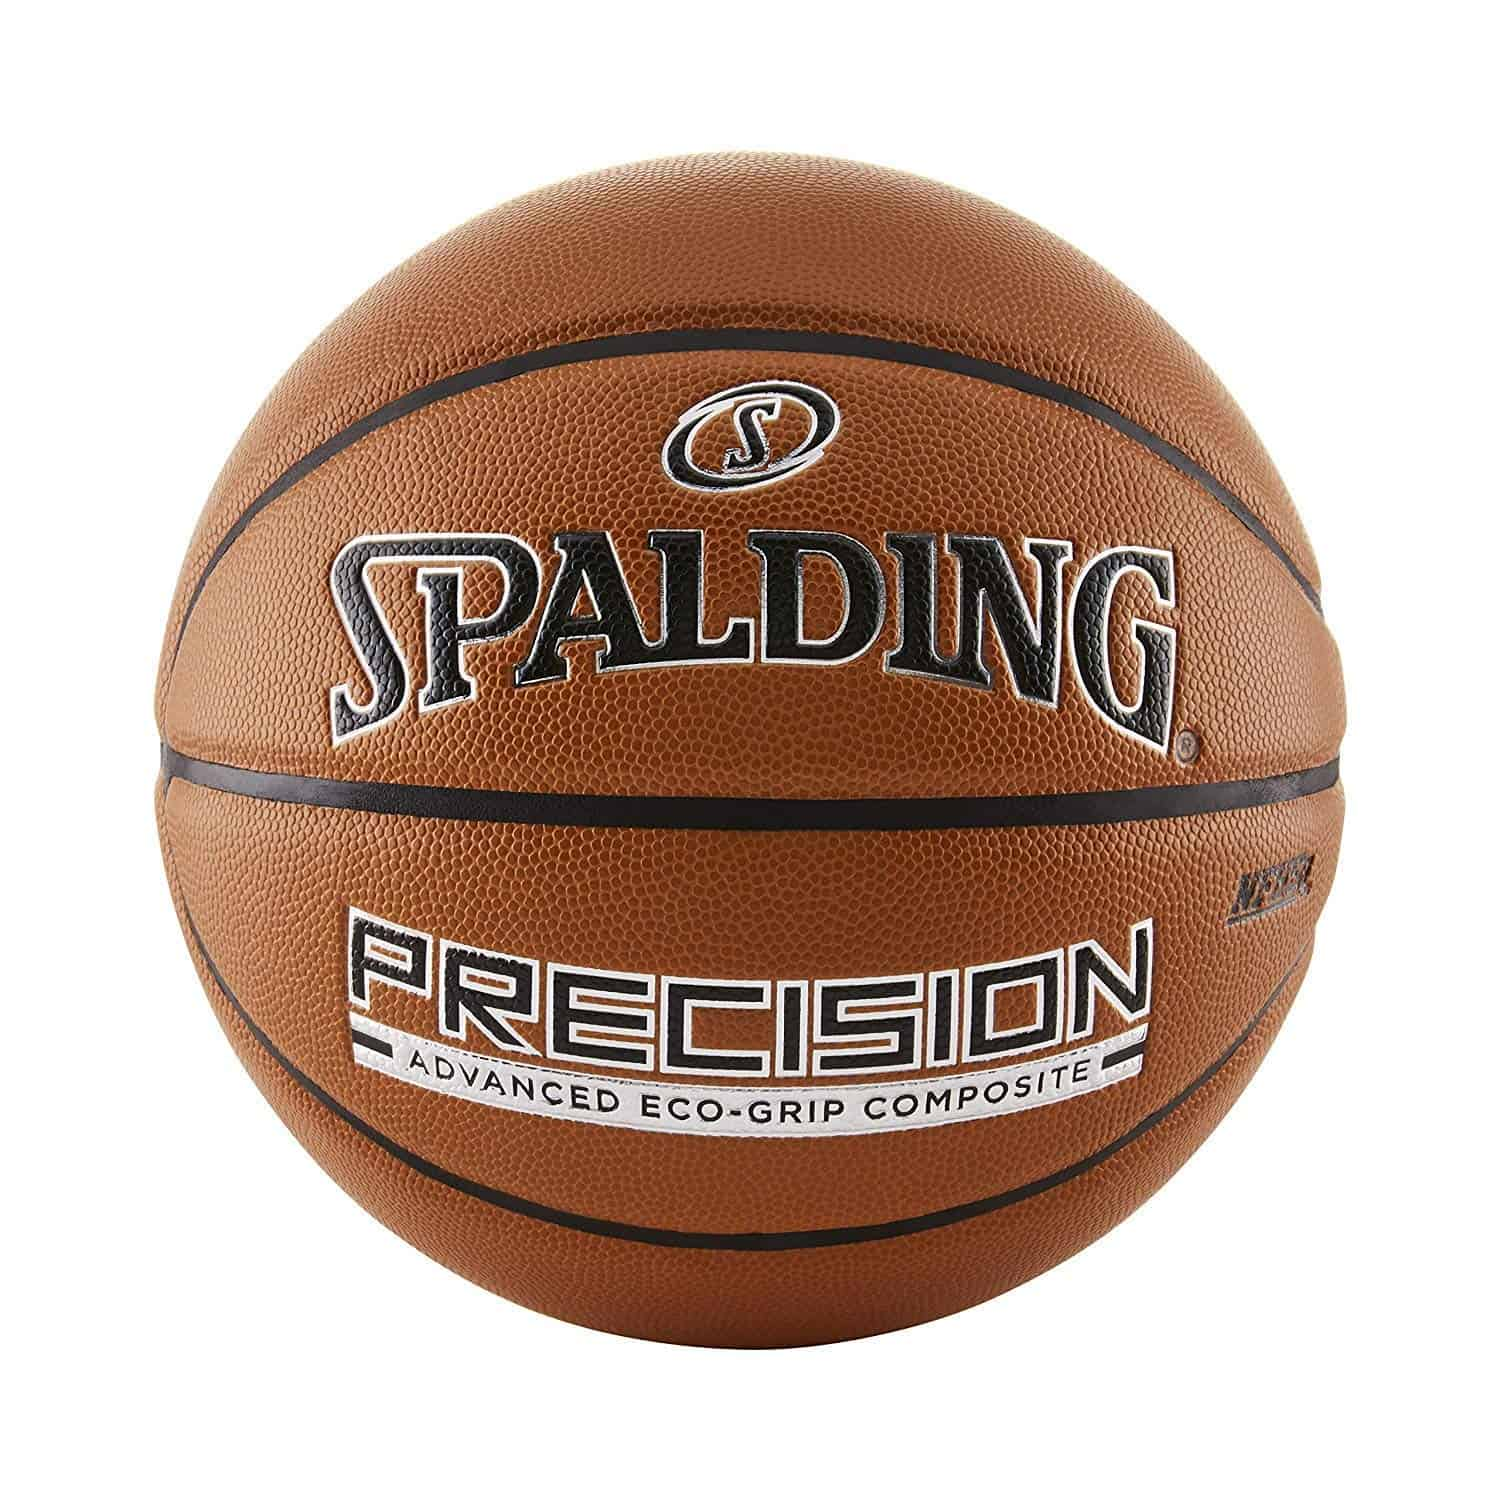 Spalding Precision Basketball